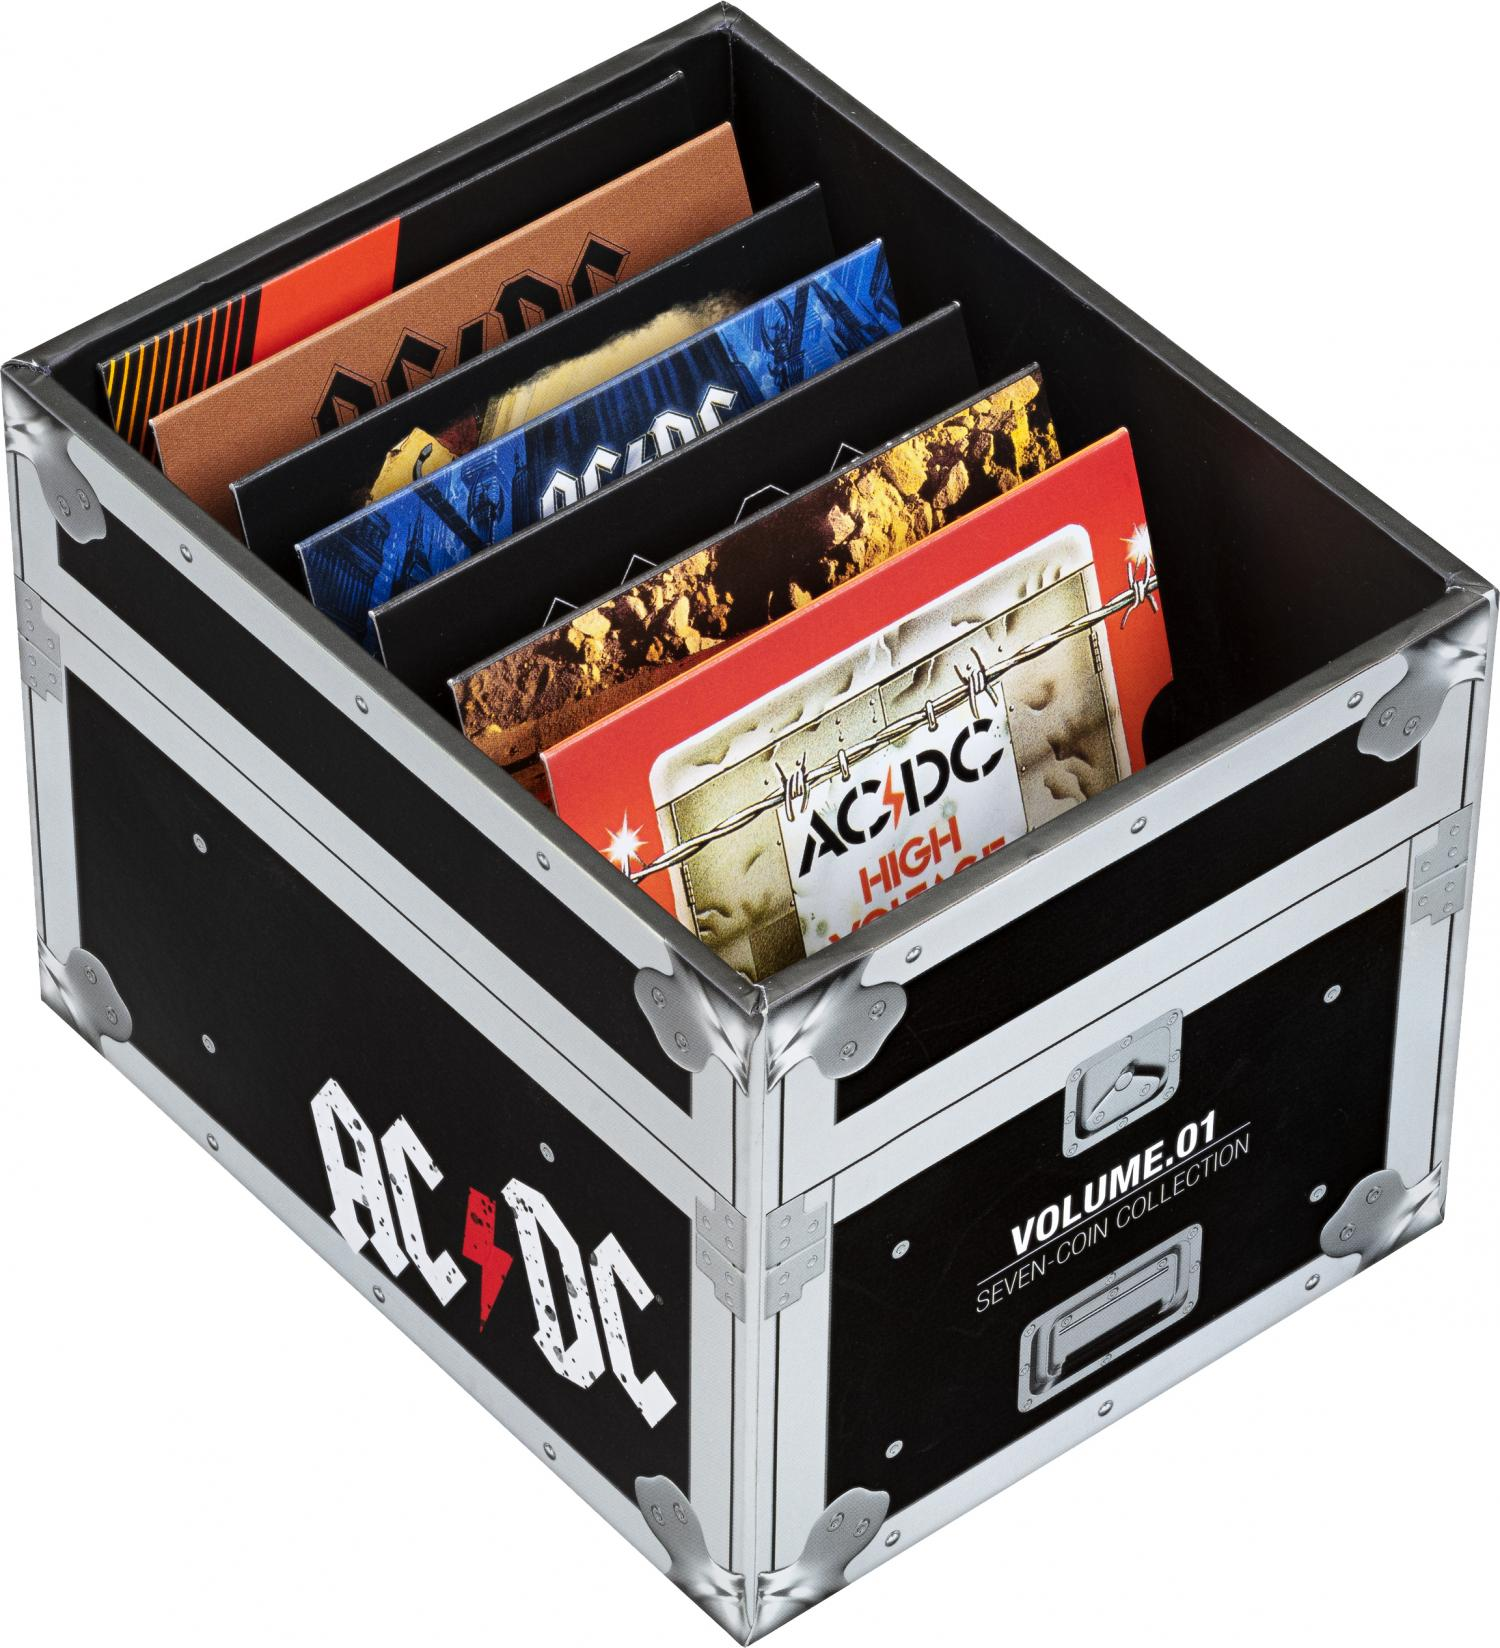 Thumbnail for 2020 2021 20c Coloured Uncirculated 7 Coin Collection with Commemorative Coin - ACDC